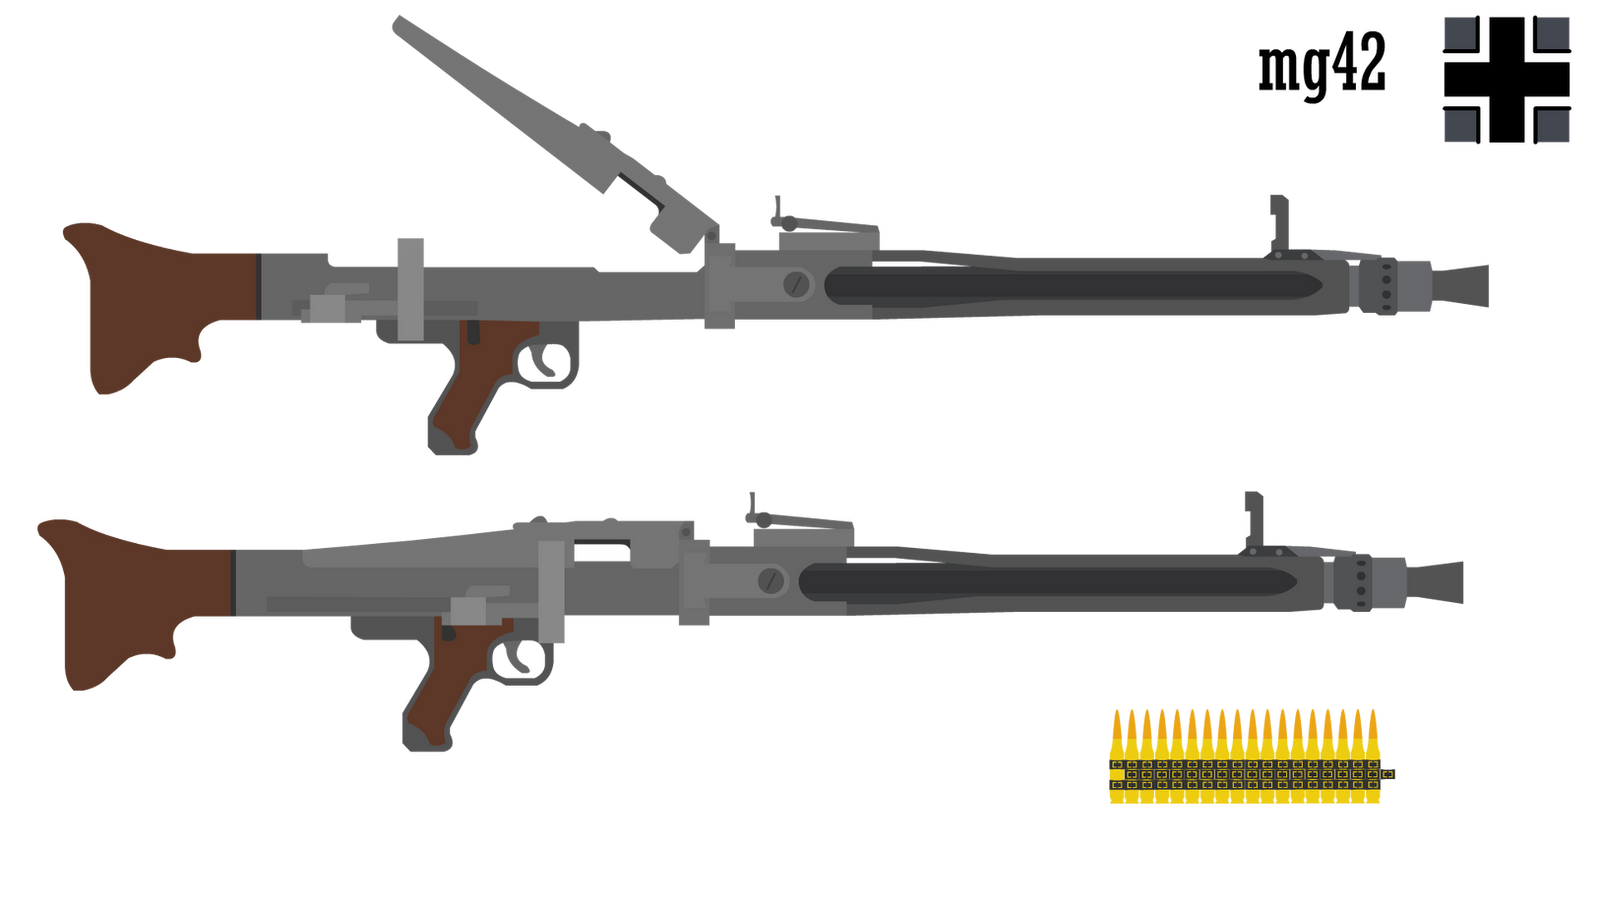 MG42 lower receiver plans -